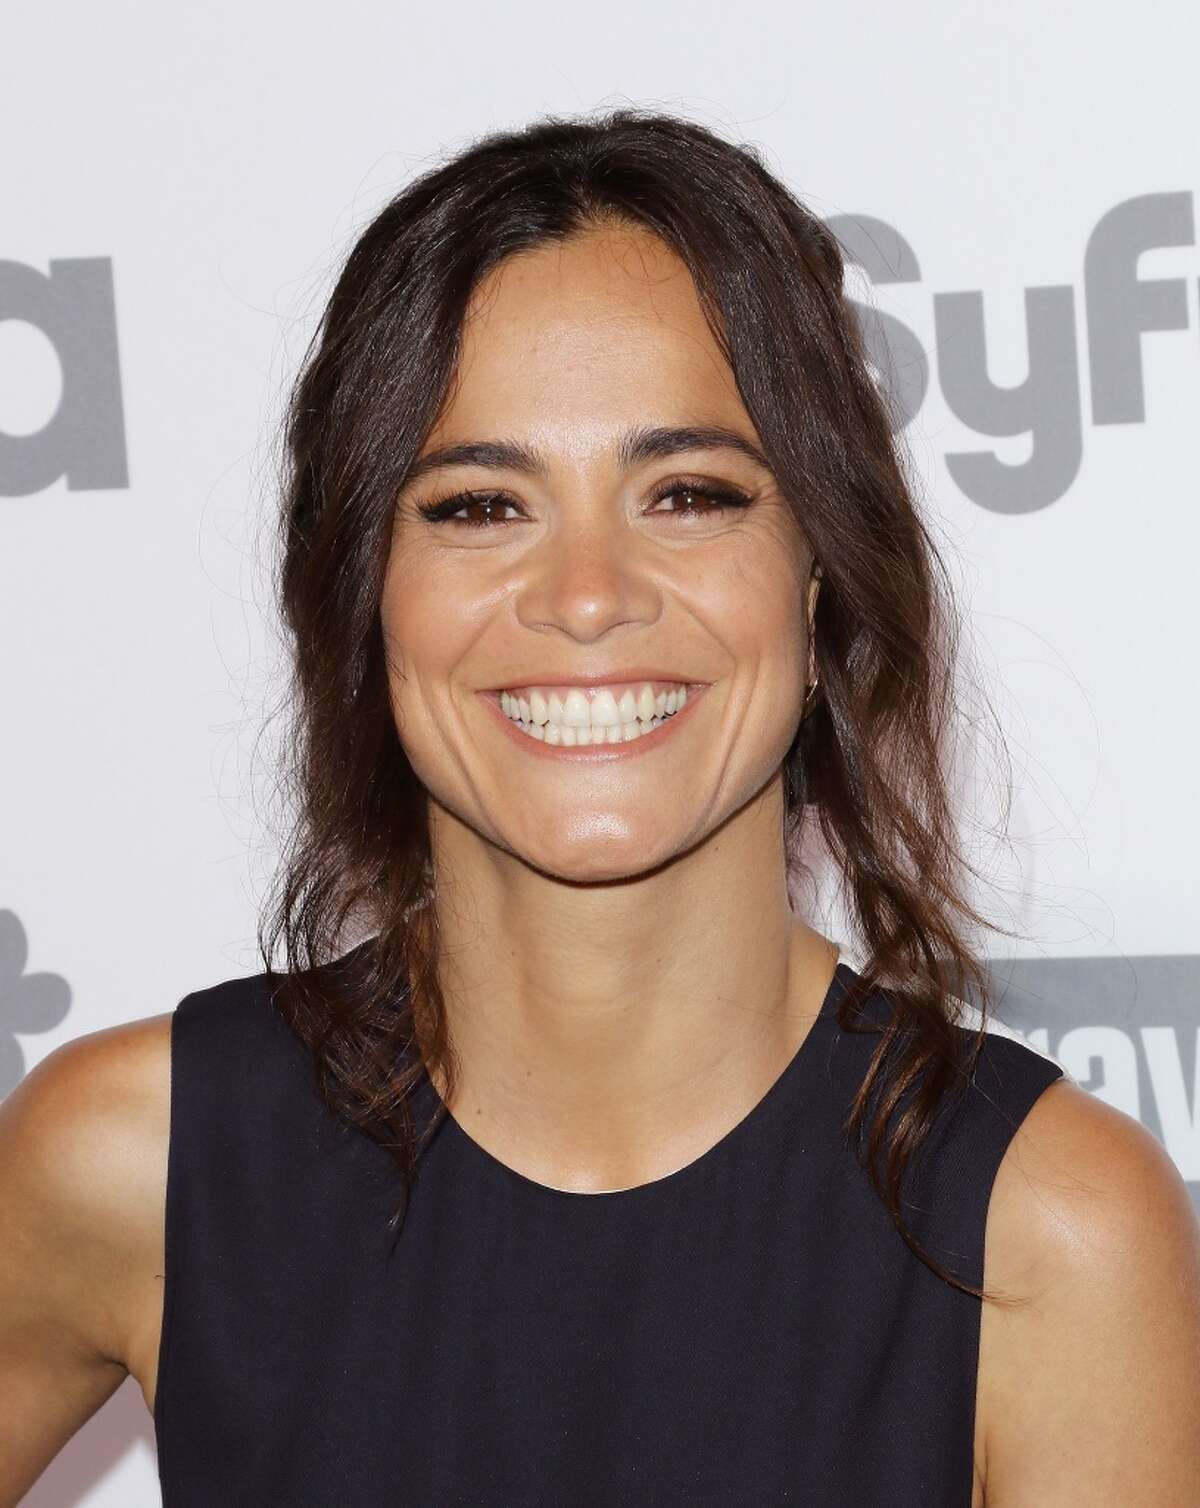 Alice Braga plays a narco leader in the show based on the narconovela